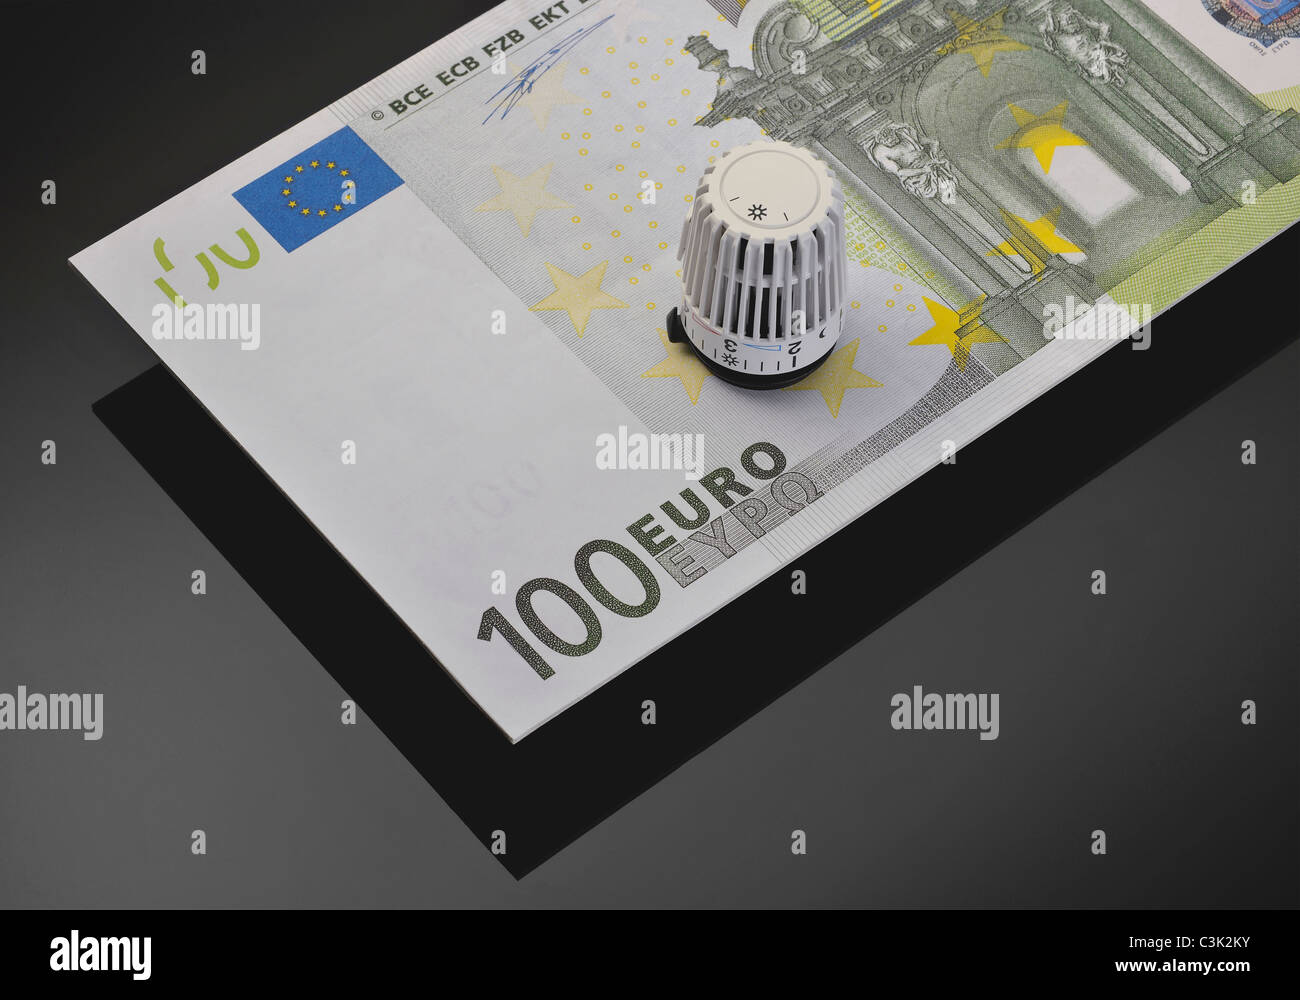 Thermostatic valve on 100 euro note, close up - Stock Image